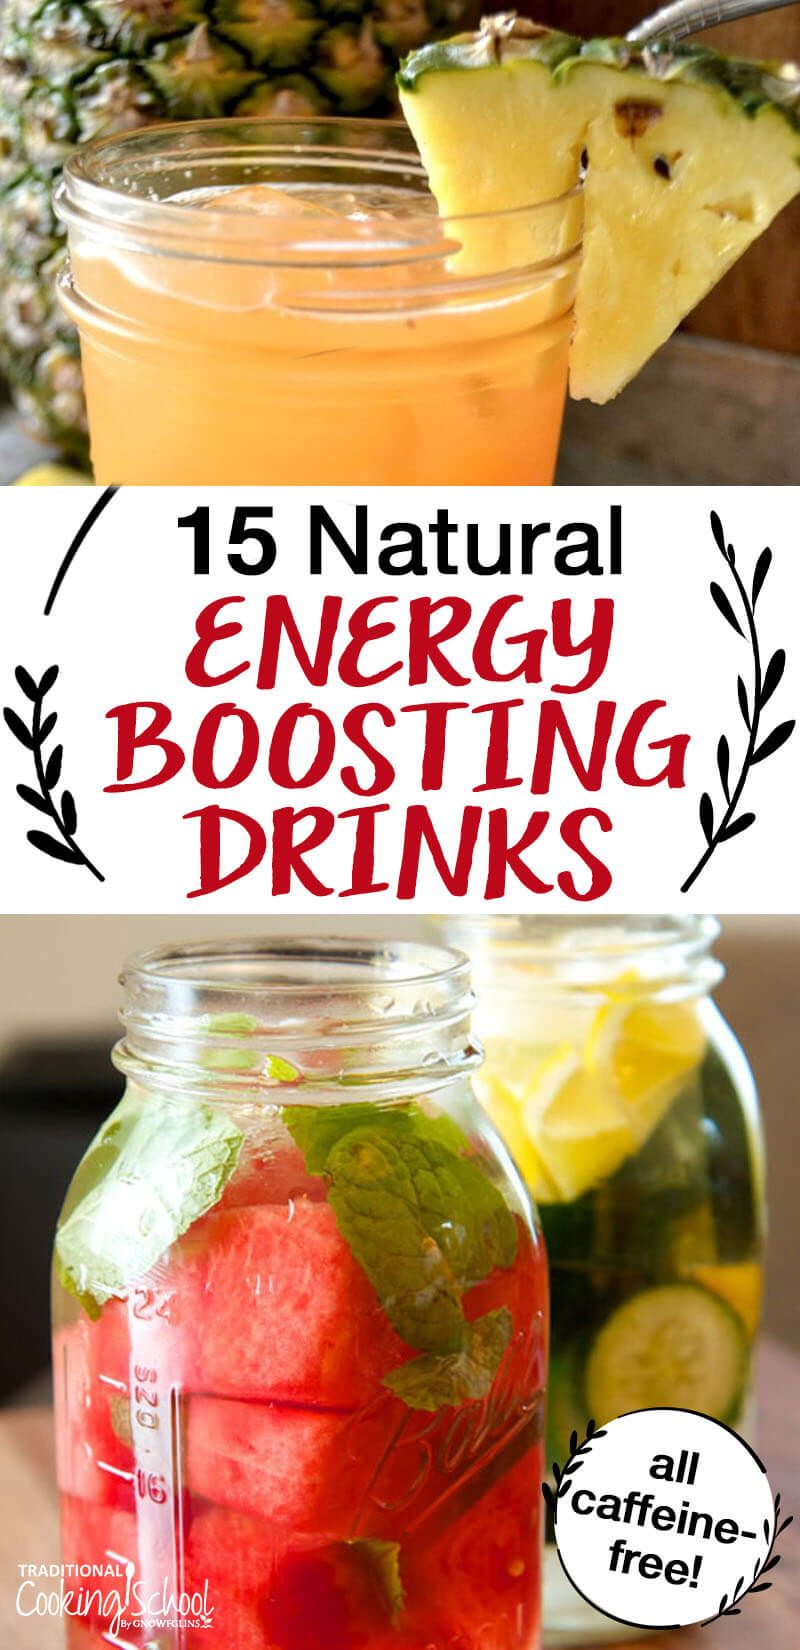 15 Natural Energy Boosting Drinks No Caffeine Allowed With Images Healthy Energy Drinks Caffeine Free Drinks Energy Foods